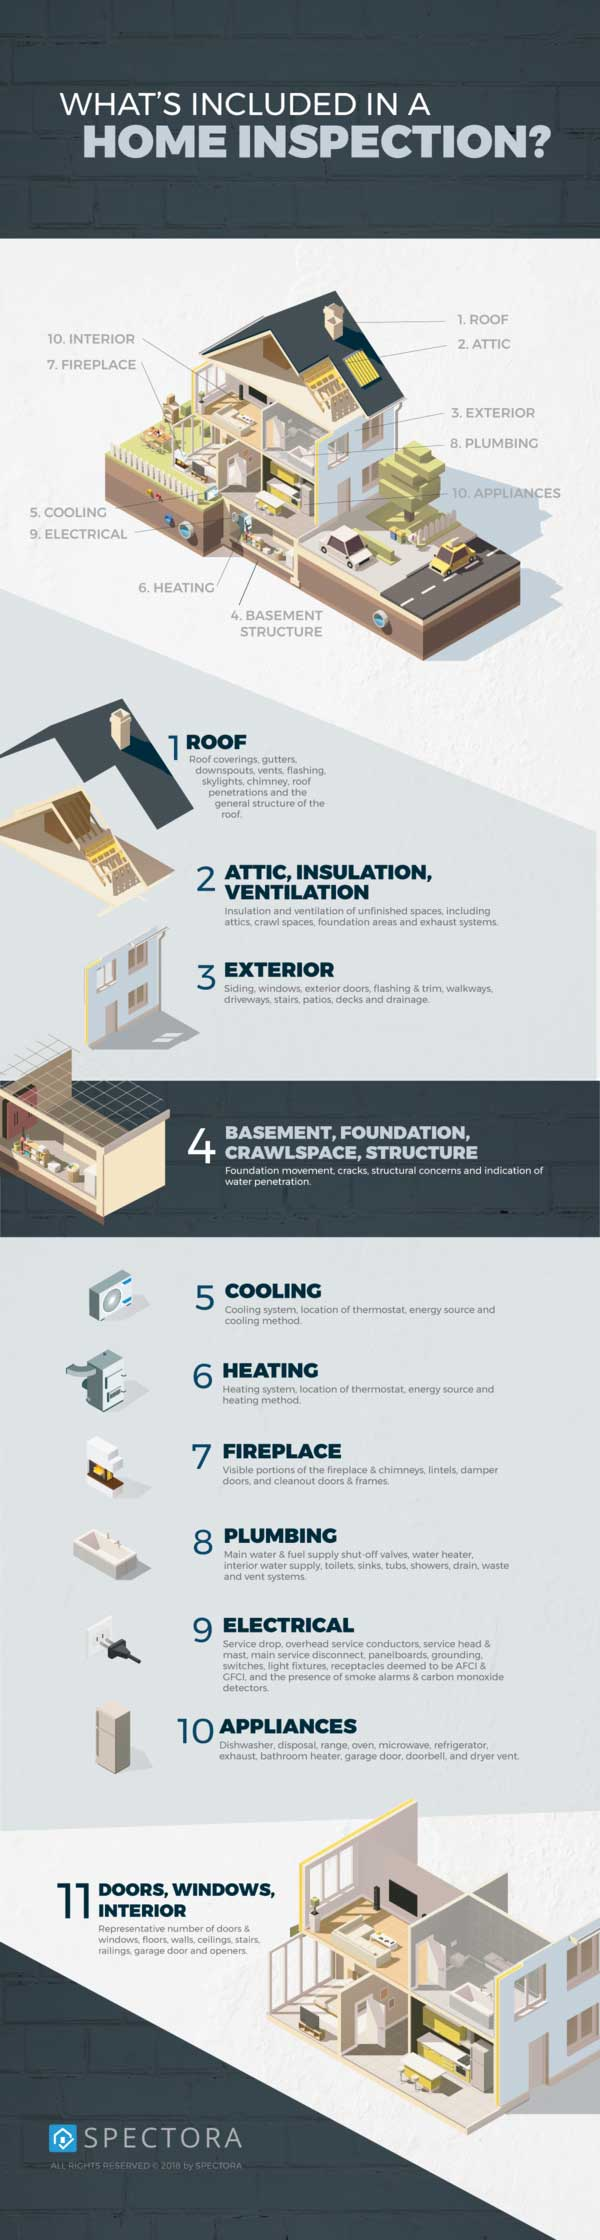 Spectora infographic demonstrating what's in an inspection.